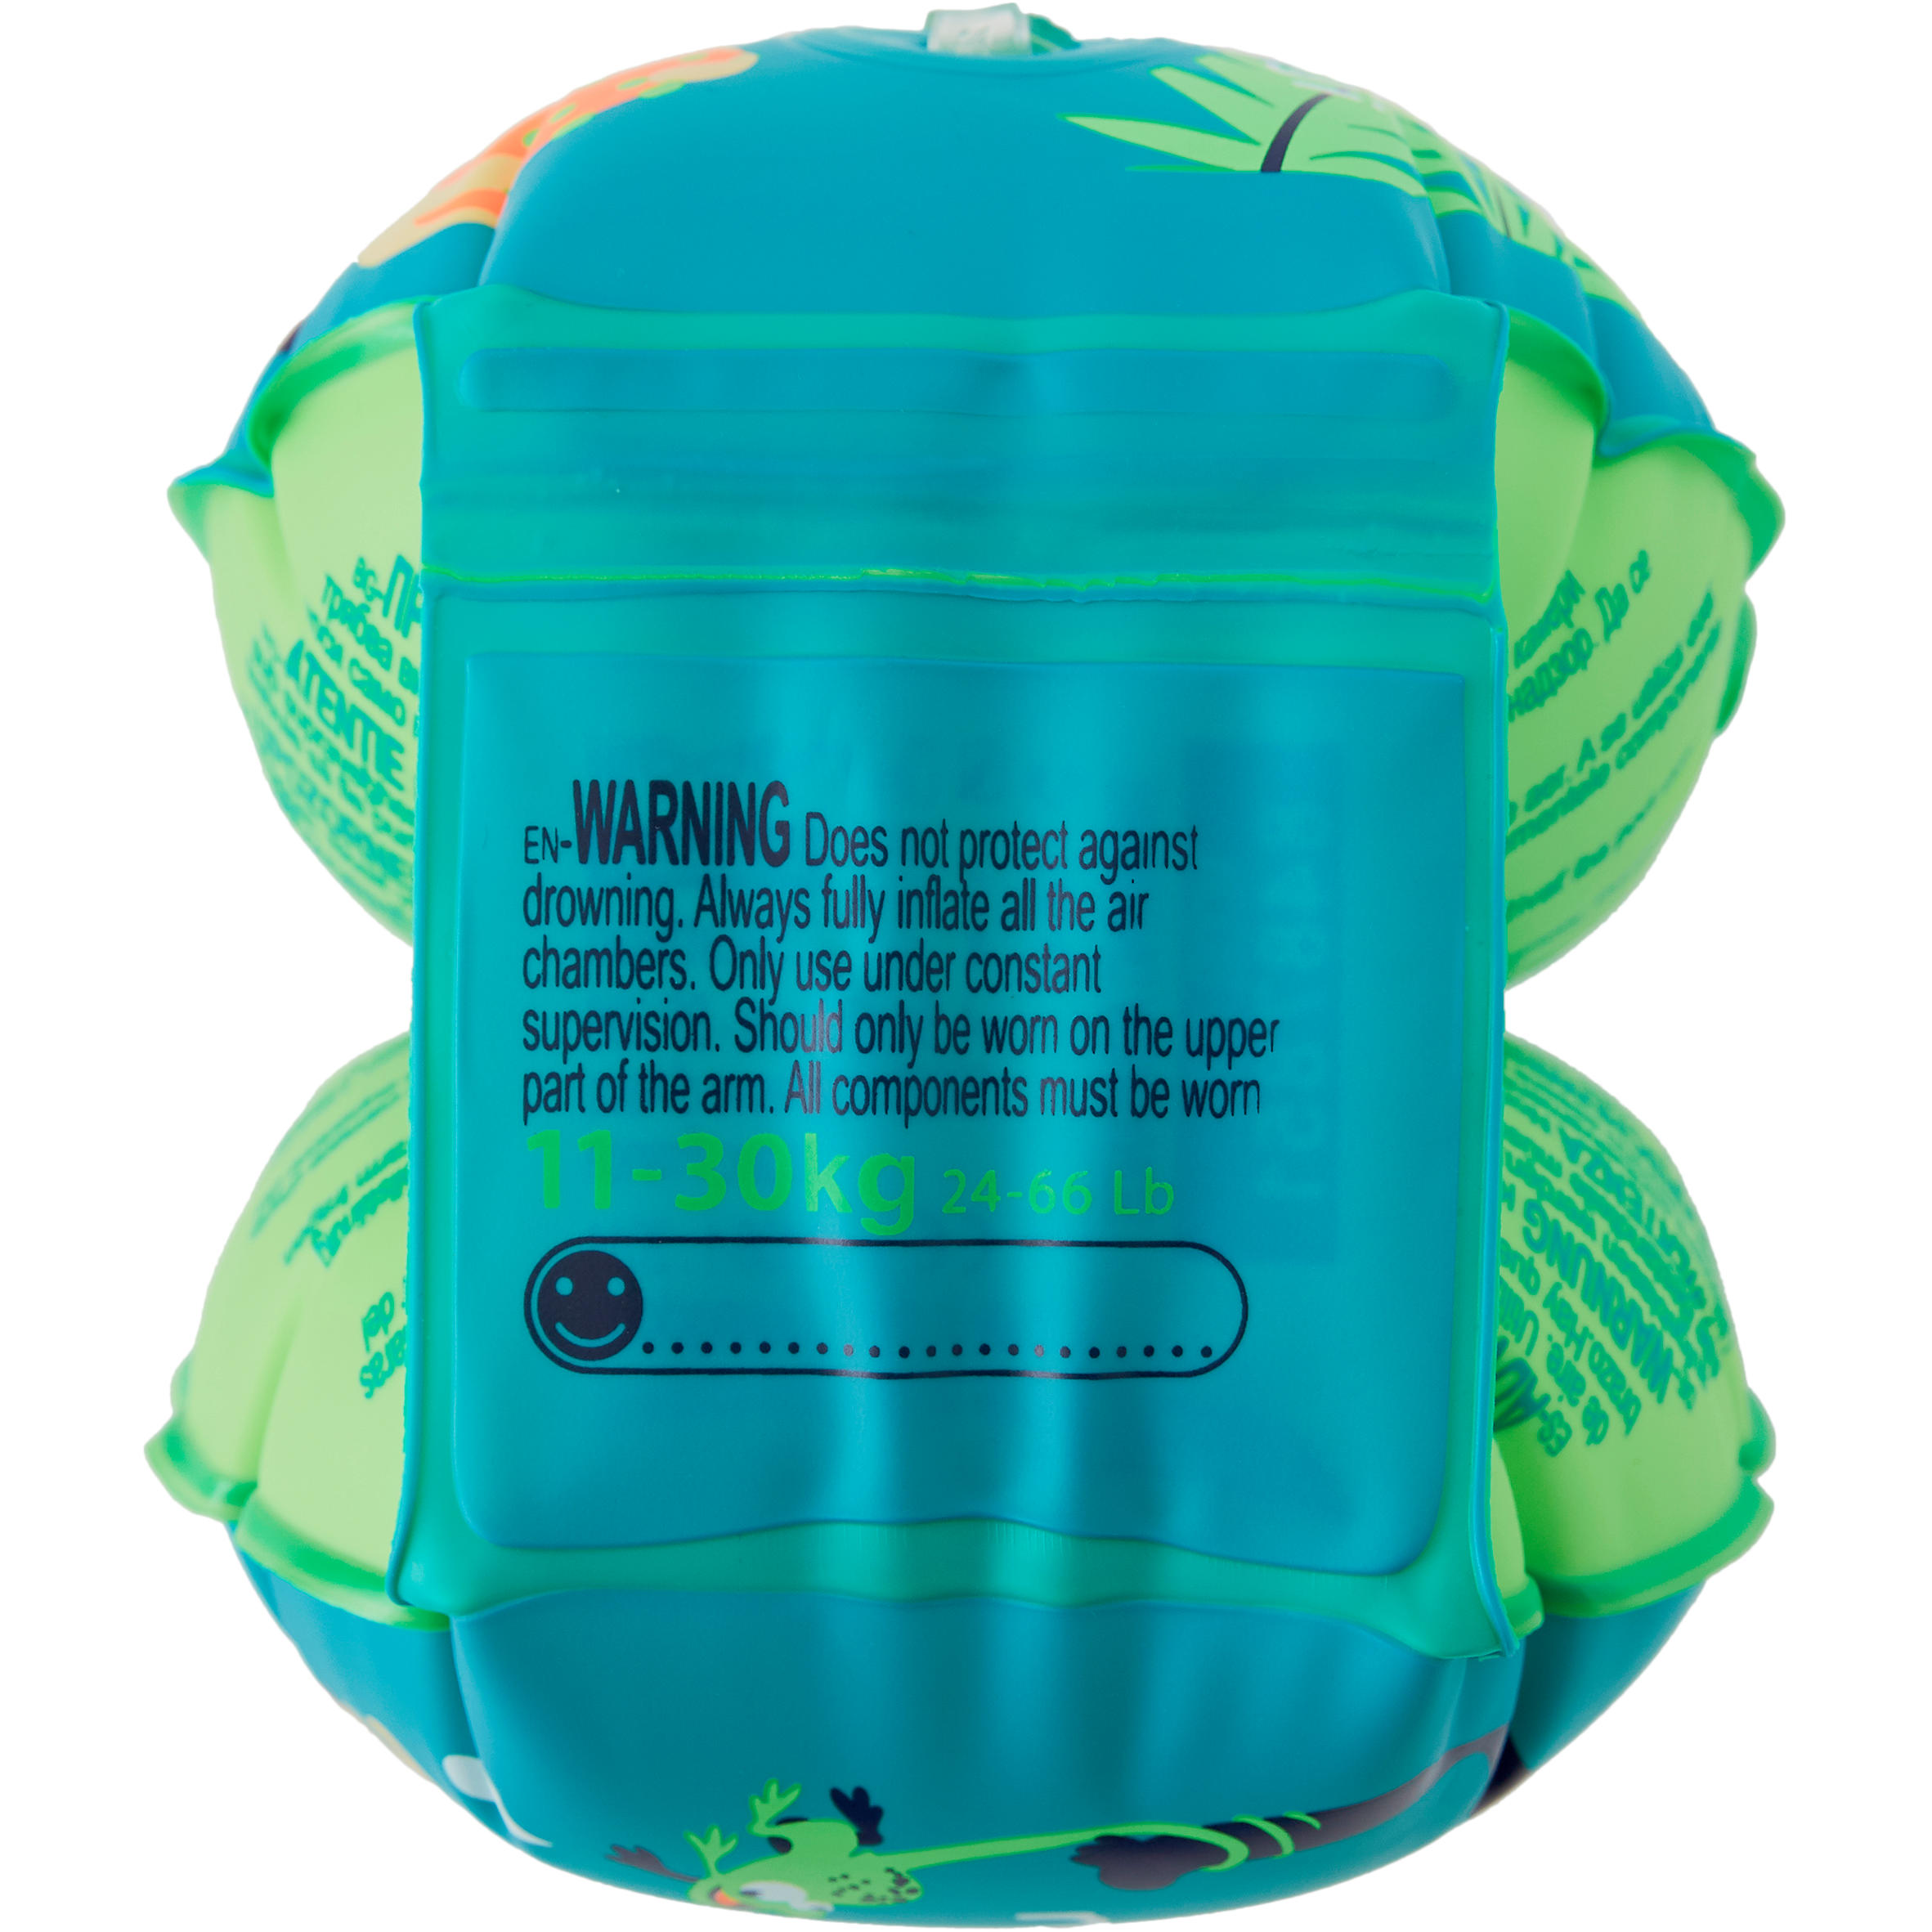 11-30 kg Children's Swimming Armbands - _QUOTE_MONKEY_QUOTE_ print